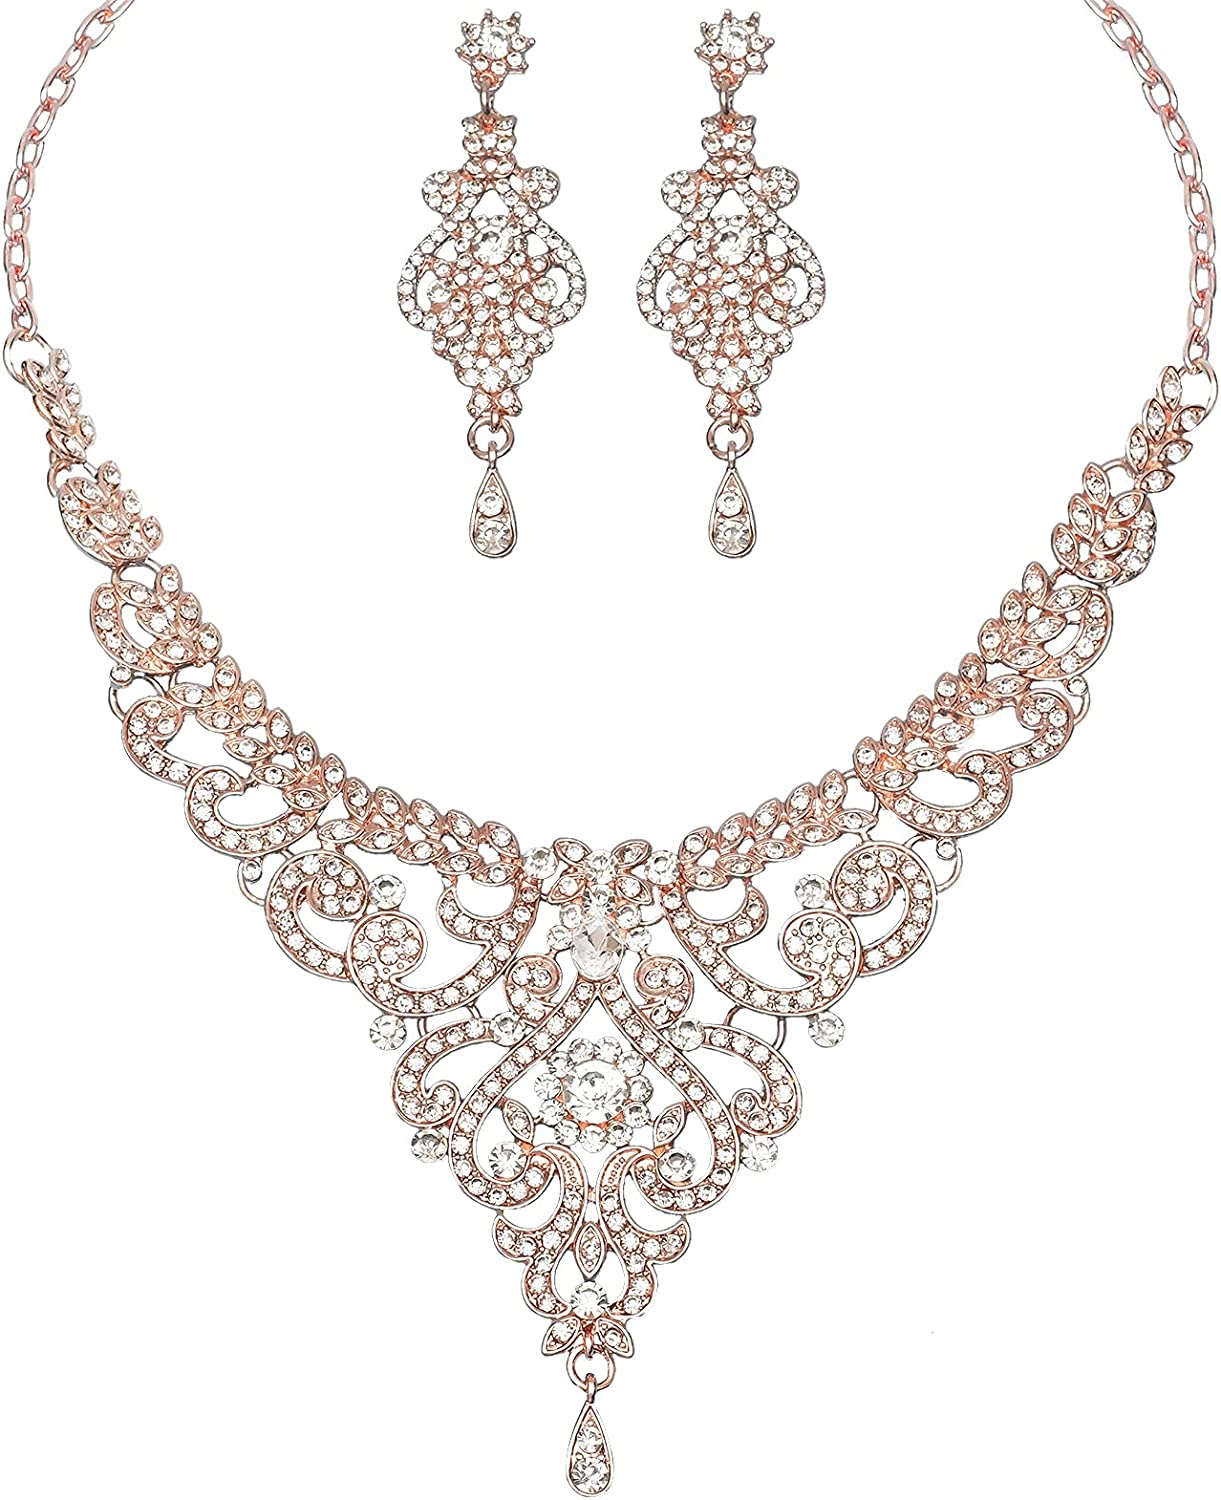 Gorgeous Crystal Wedding Jewelry for Bride Sparkling Rhinestone Bridal Statement Necklace Women's Dangle Earrings Set